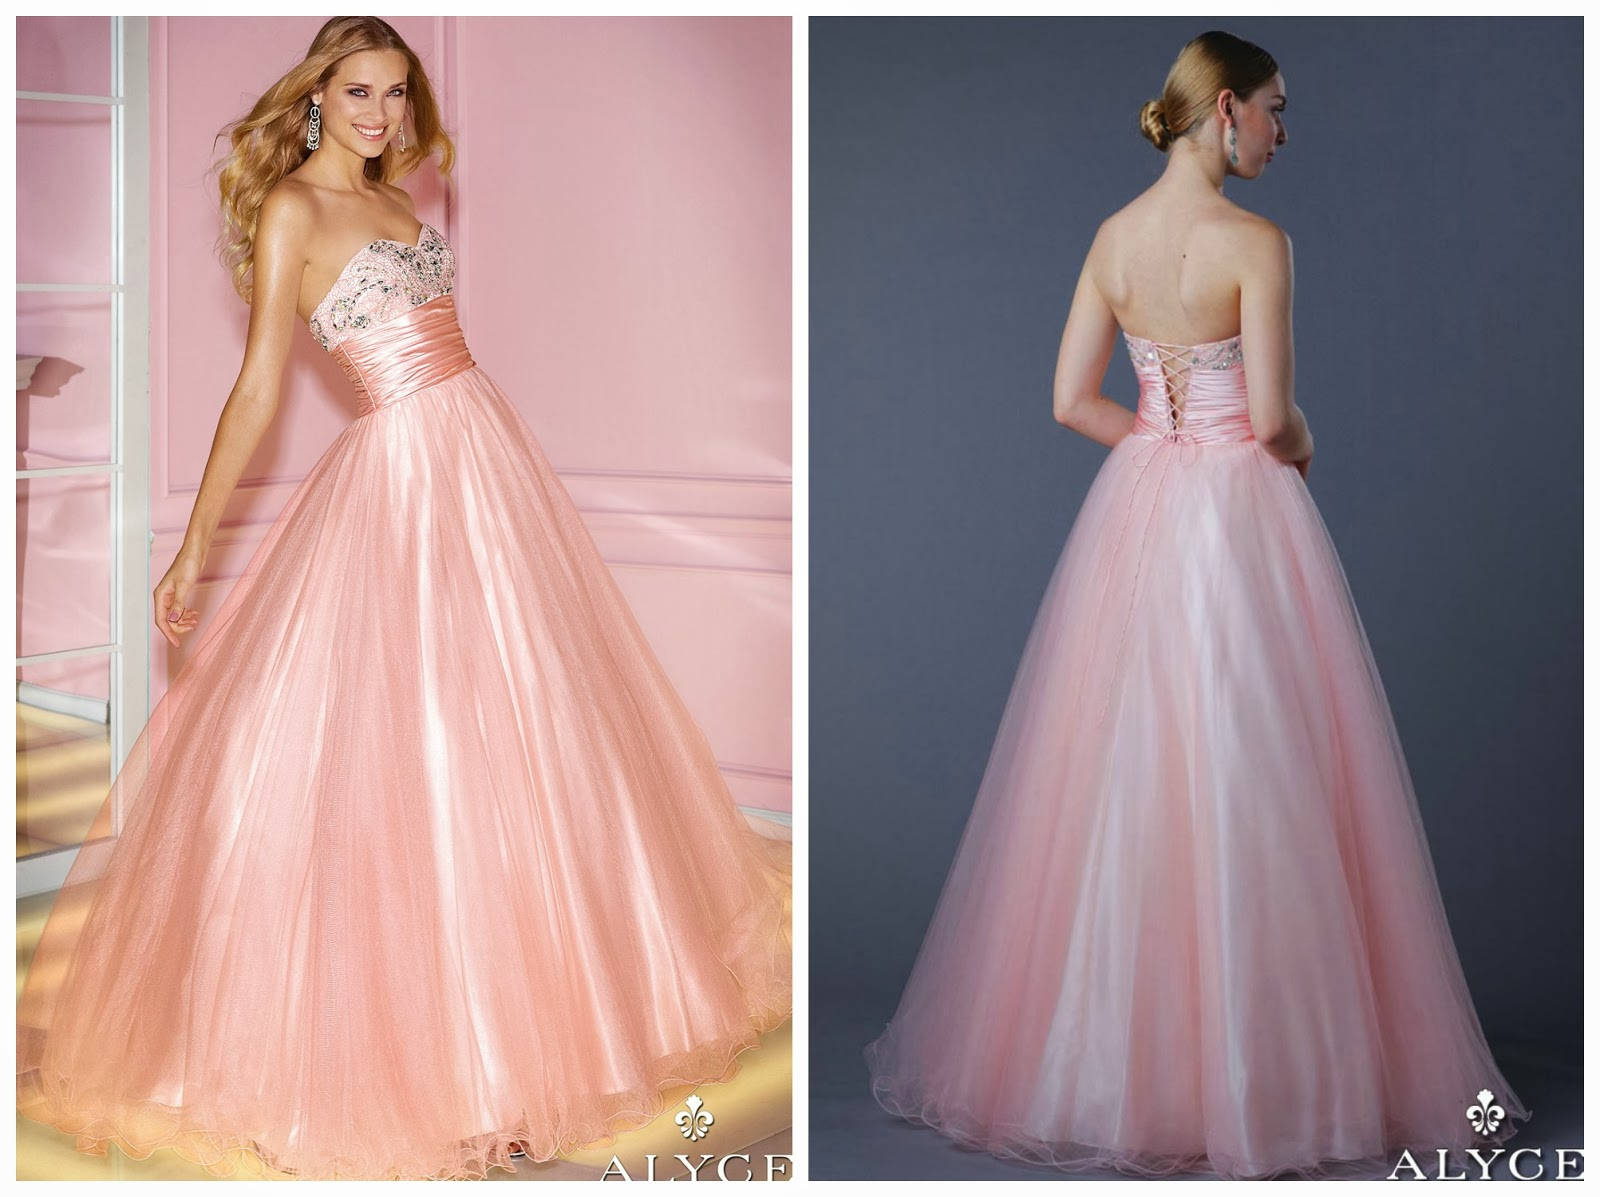 Finding a great prom dress